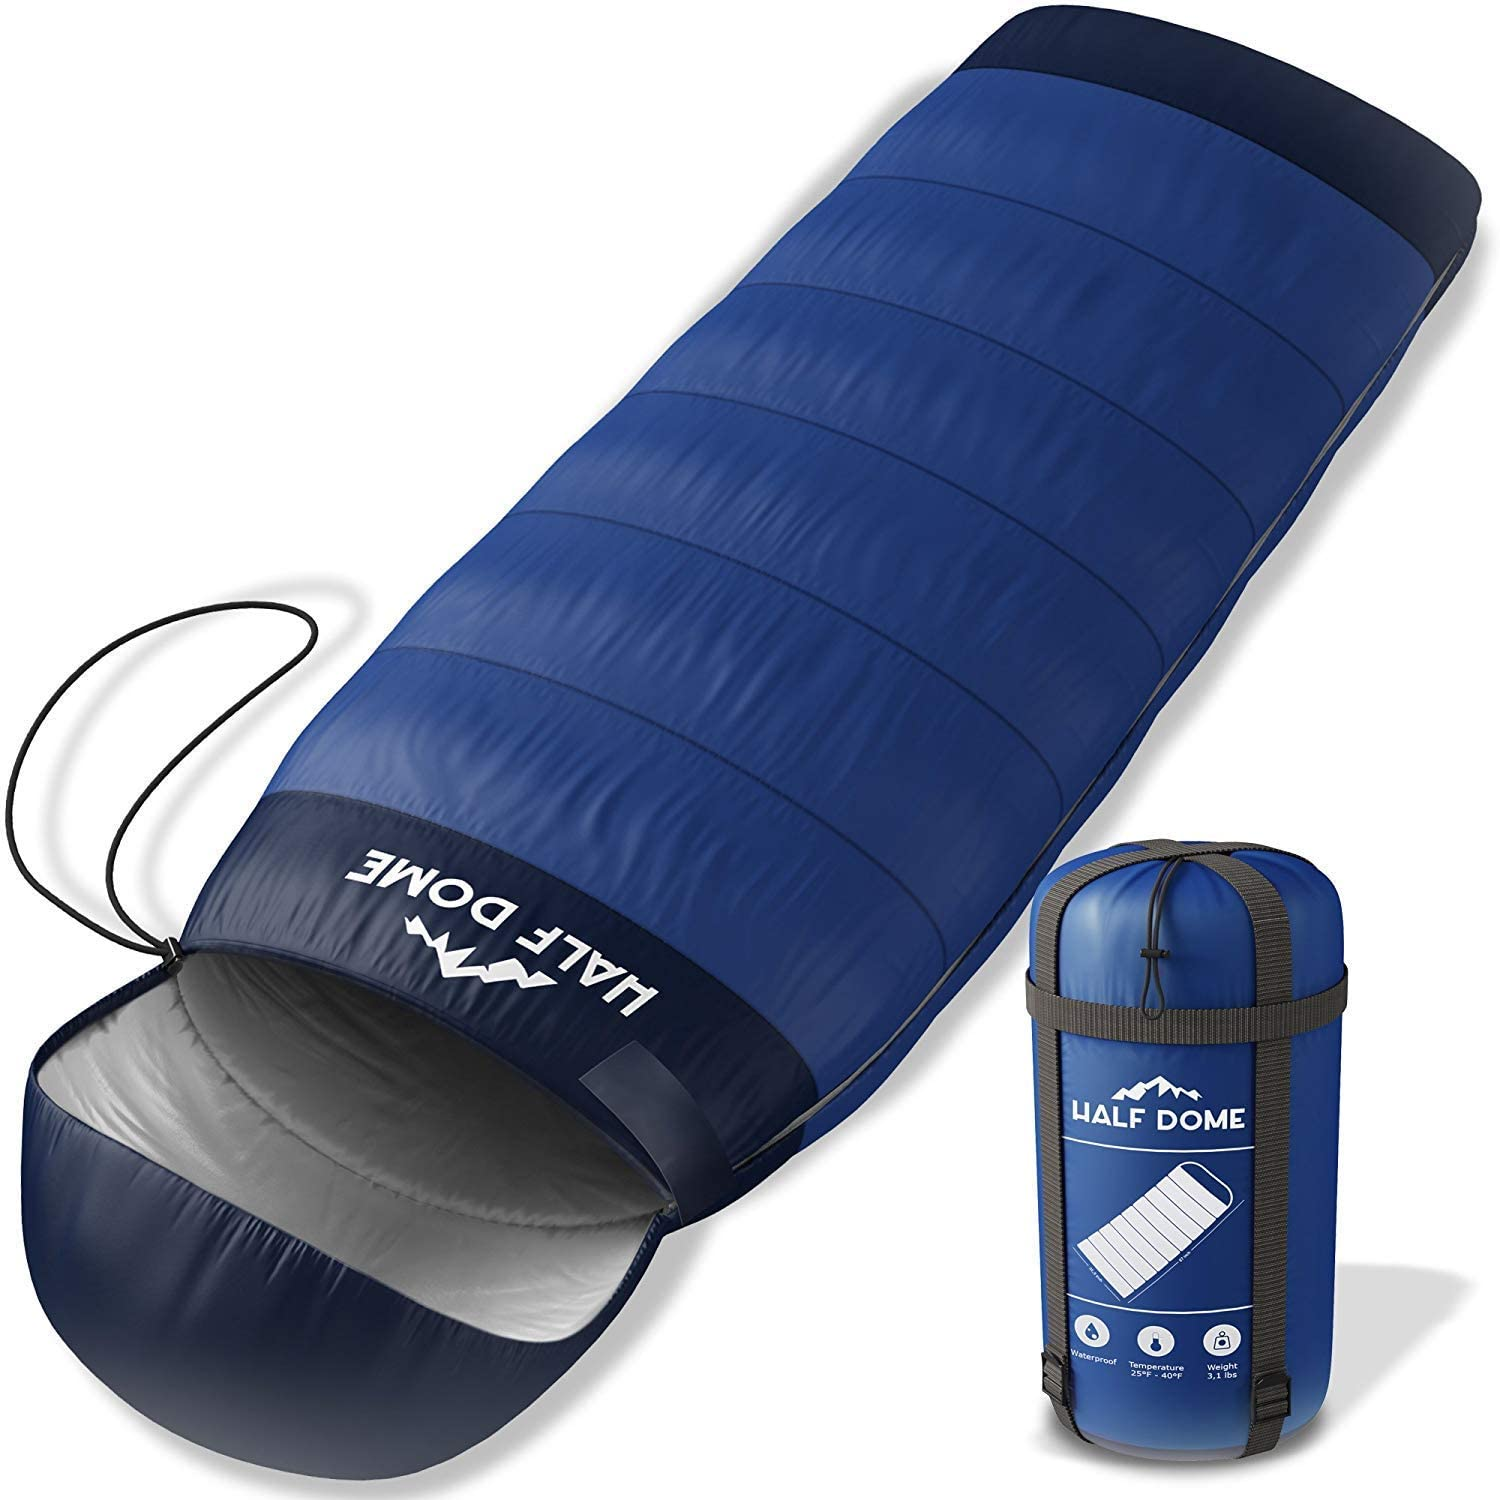 Half Dome Camping Sleeping Bag Set Women Men – Backpaking Outdoor Sleeping Option Ultralight Compact Sleeping Bag